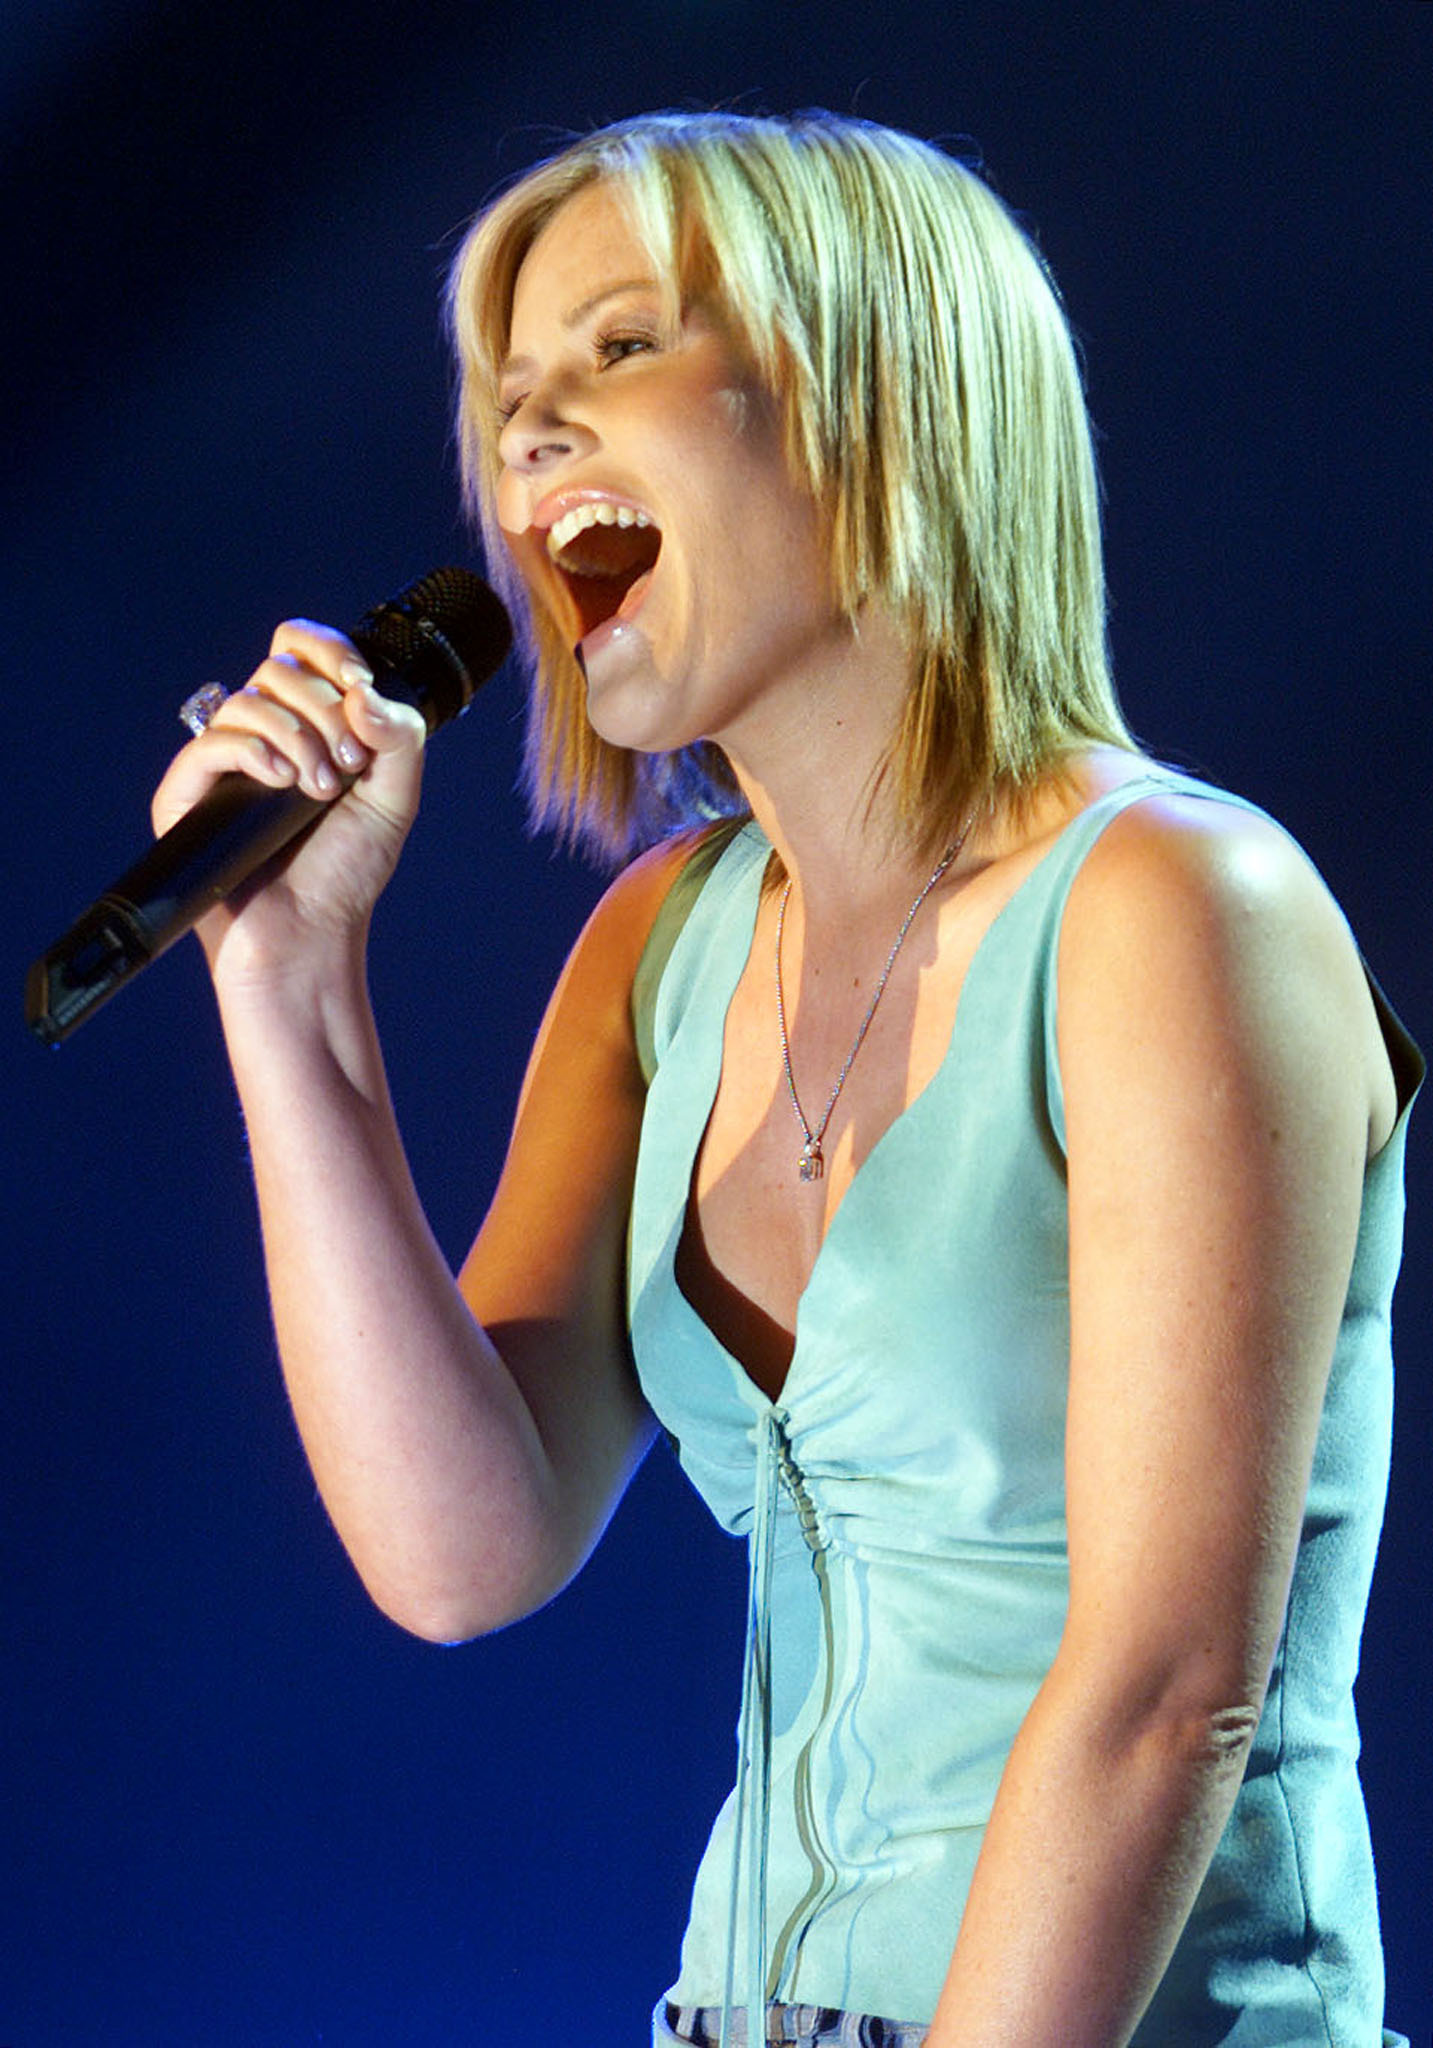 dido microphone singing Celebrity HD Wallpaper